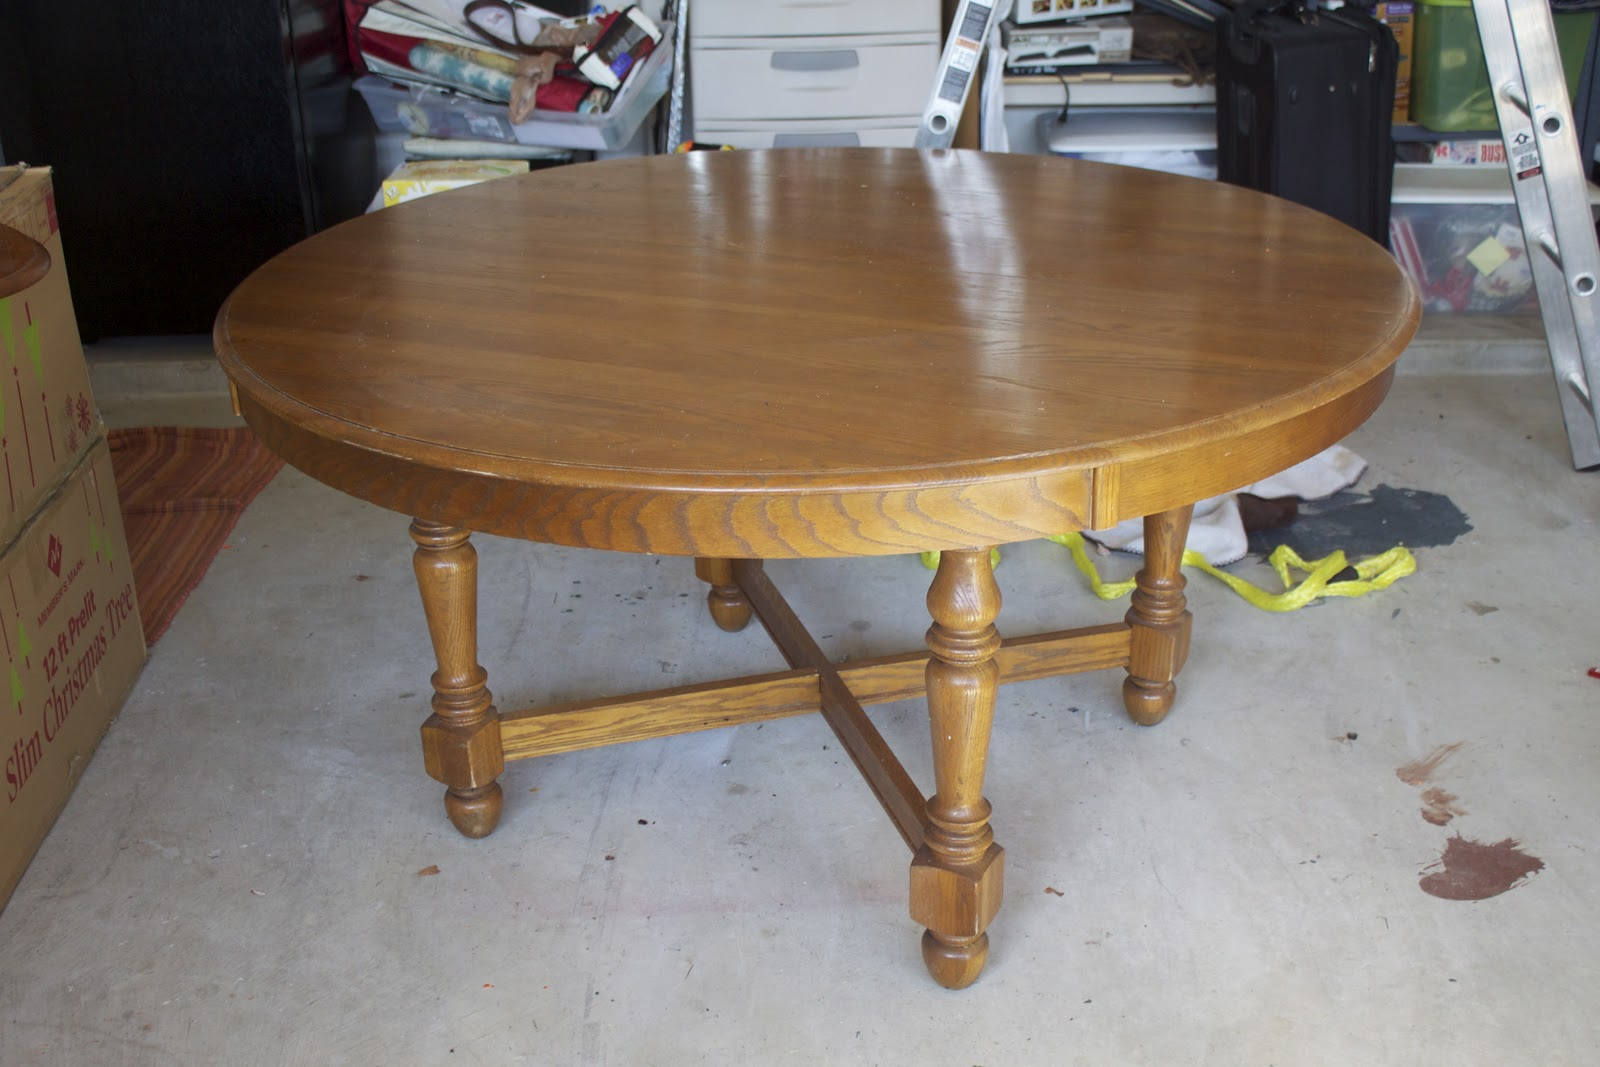 found on craigslist for 300 solid wood and 84